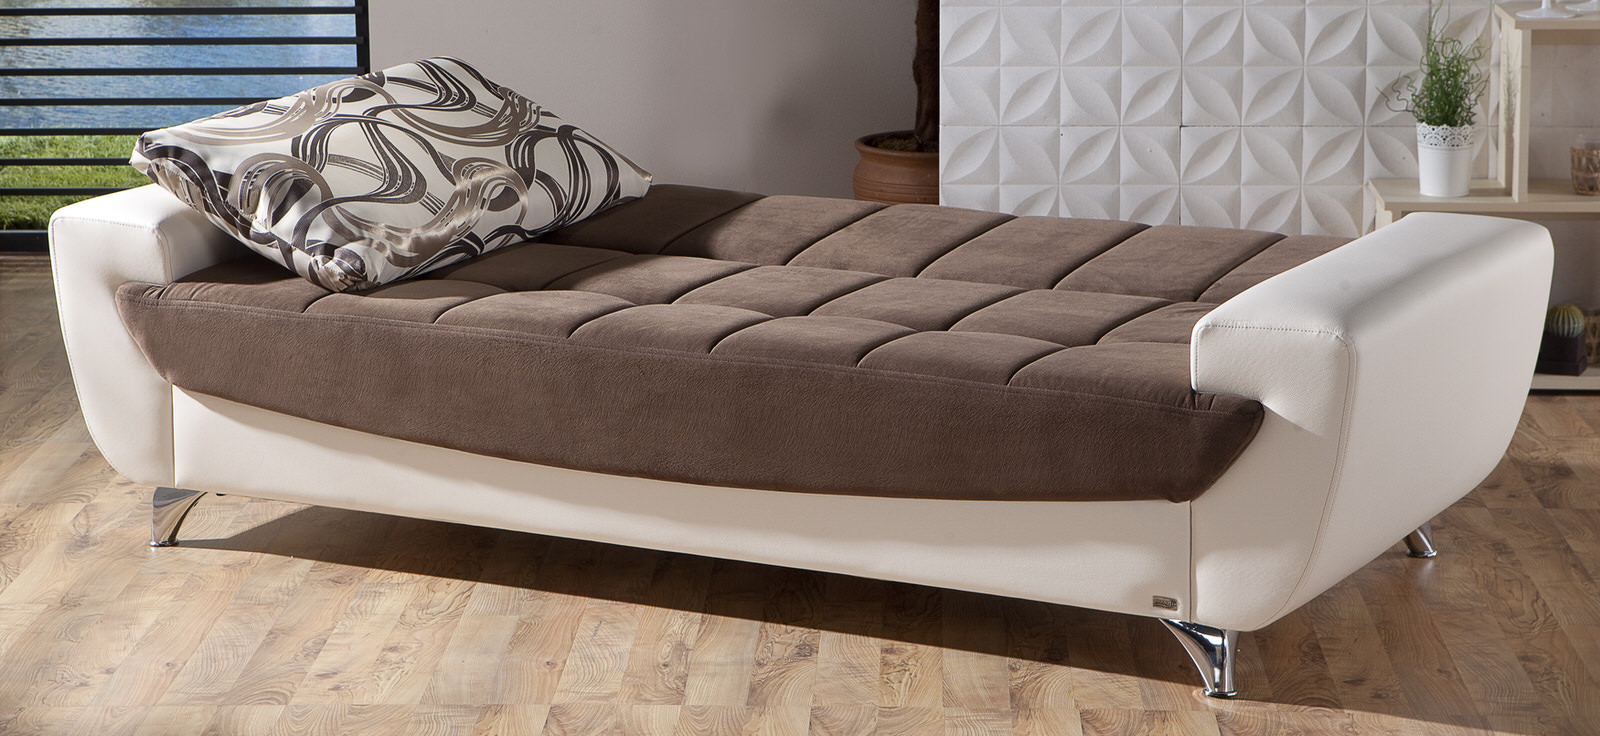 High quality sofa beds sofa beds ligne roset official site for Best sofas 2016